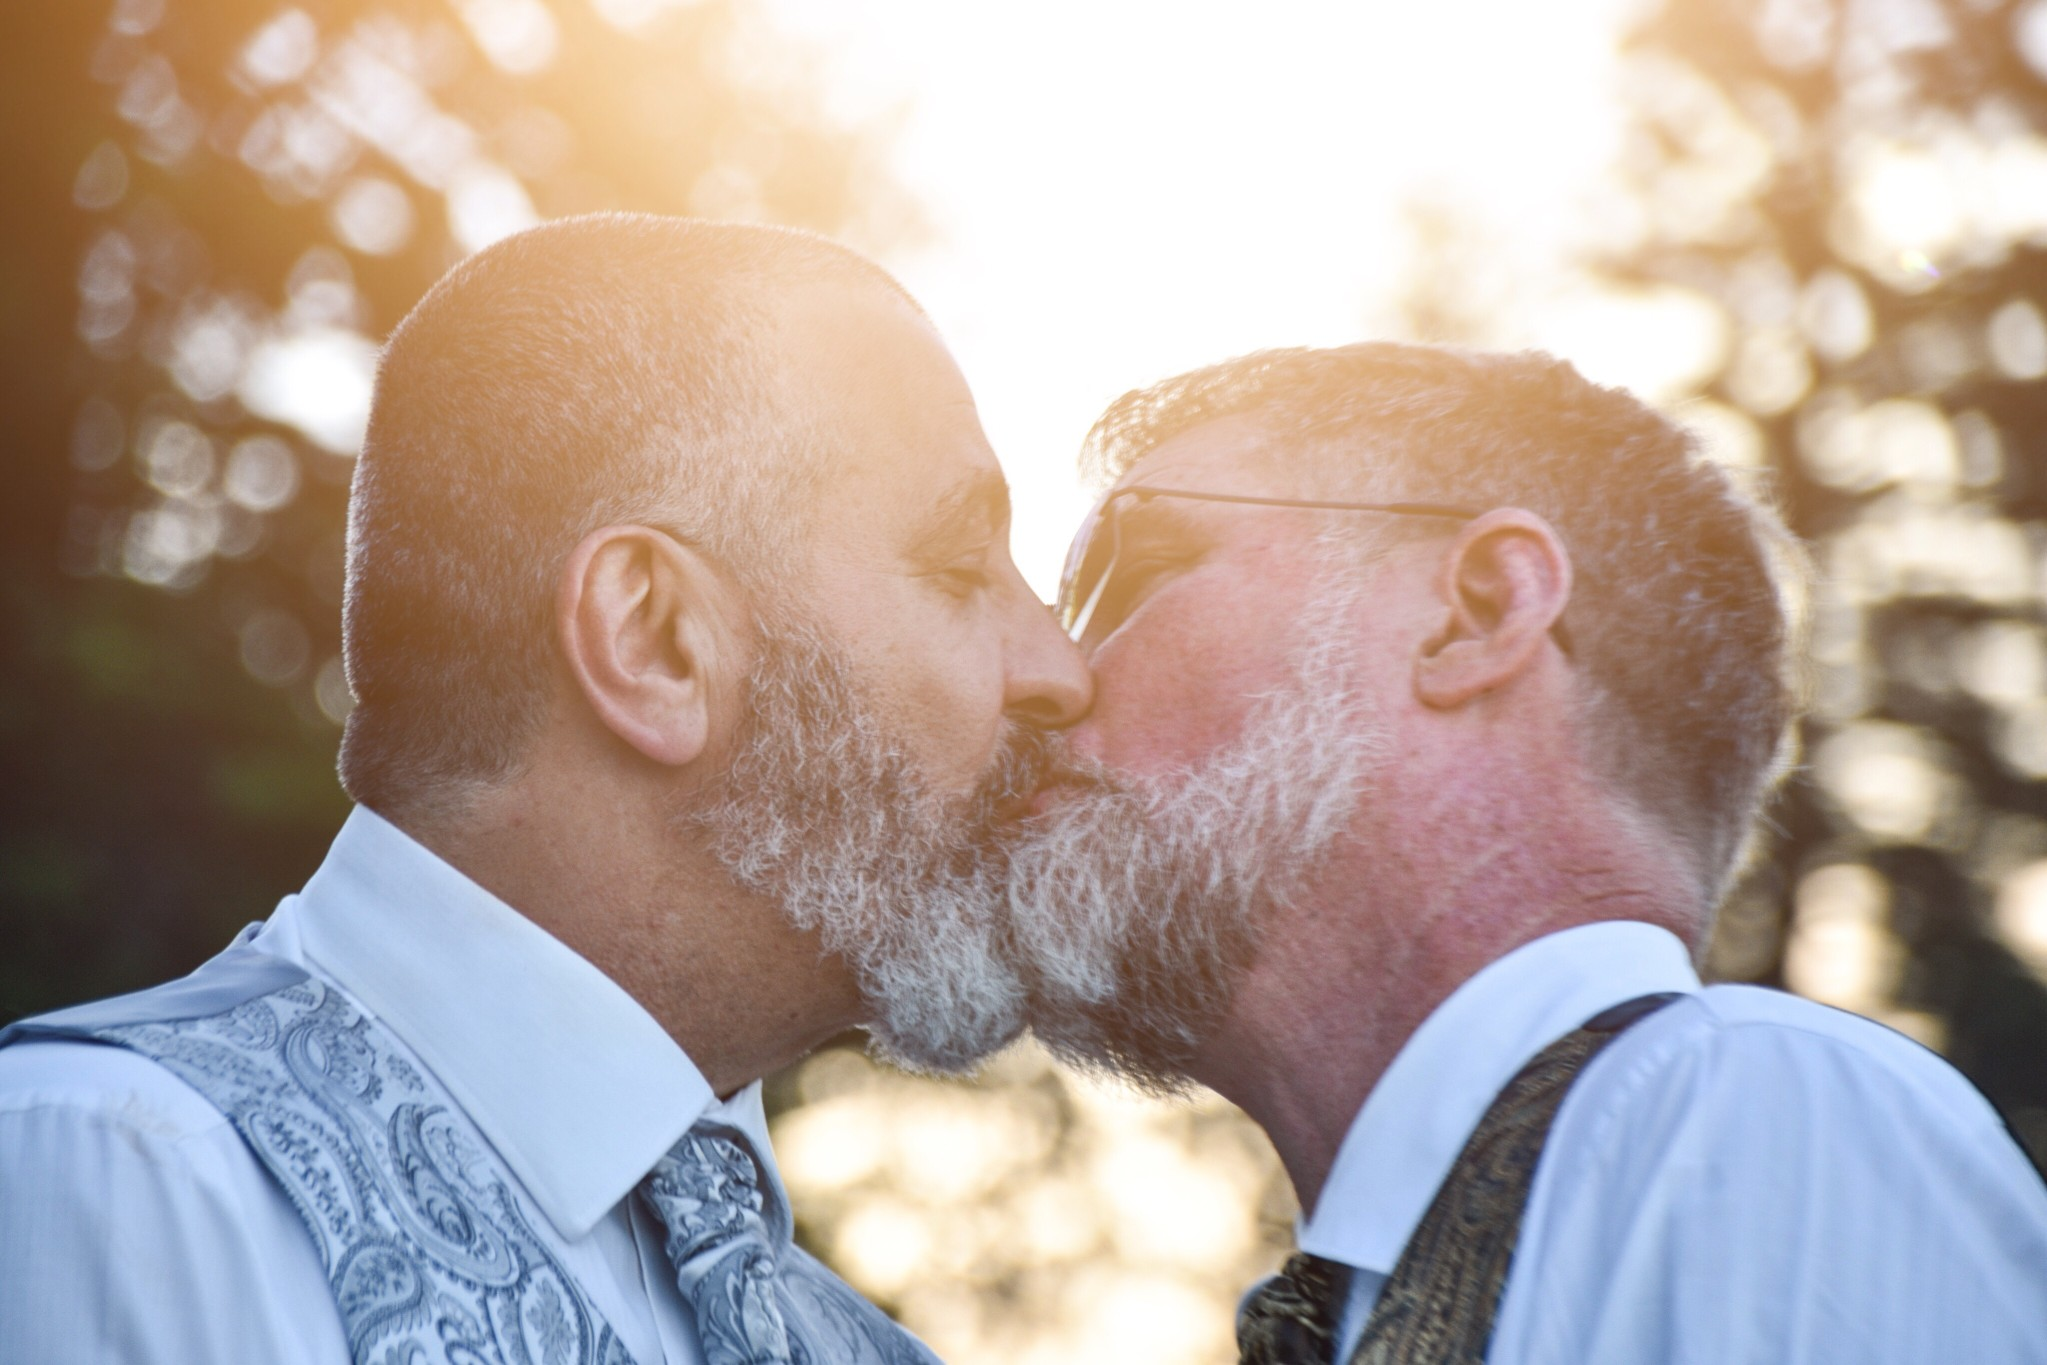 men-modern-wedding-marriage-same-sex_t20_dx0W8l